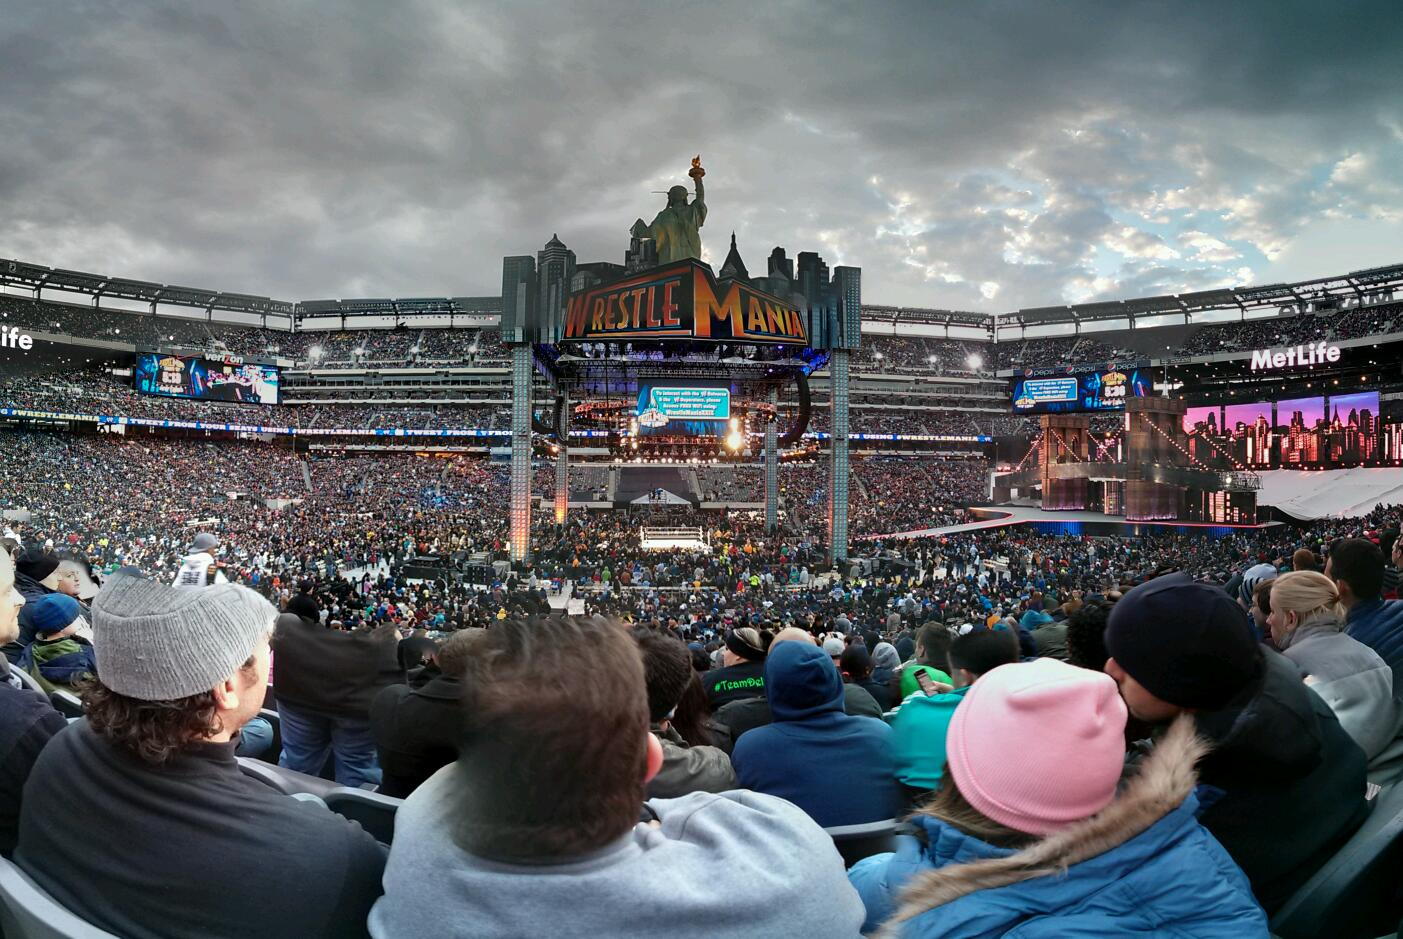 Photo of MetLife Stadium in East Rutherford City, New Jersey, United States - 4 Picture of Point of interest, Establishment, Stadium